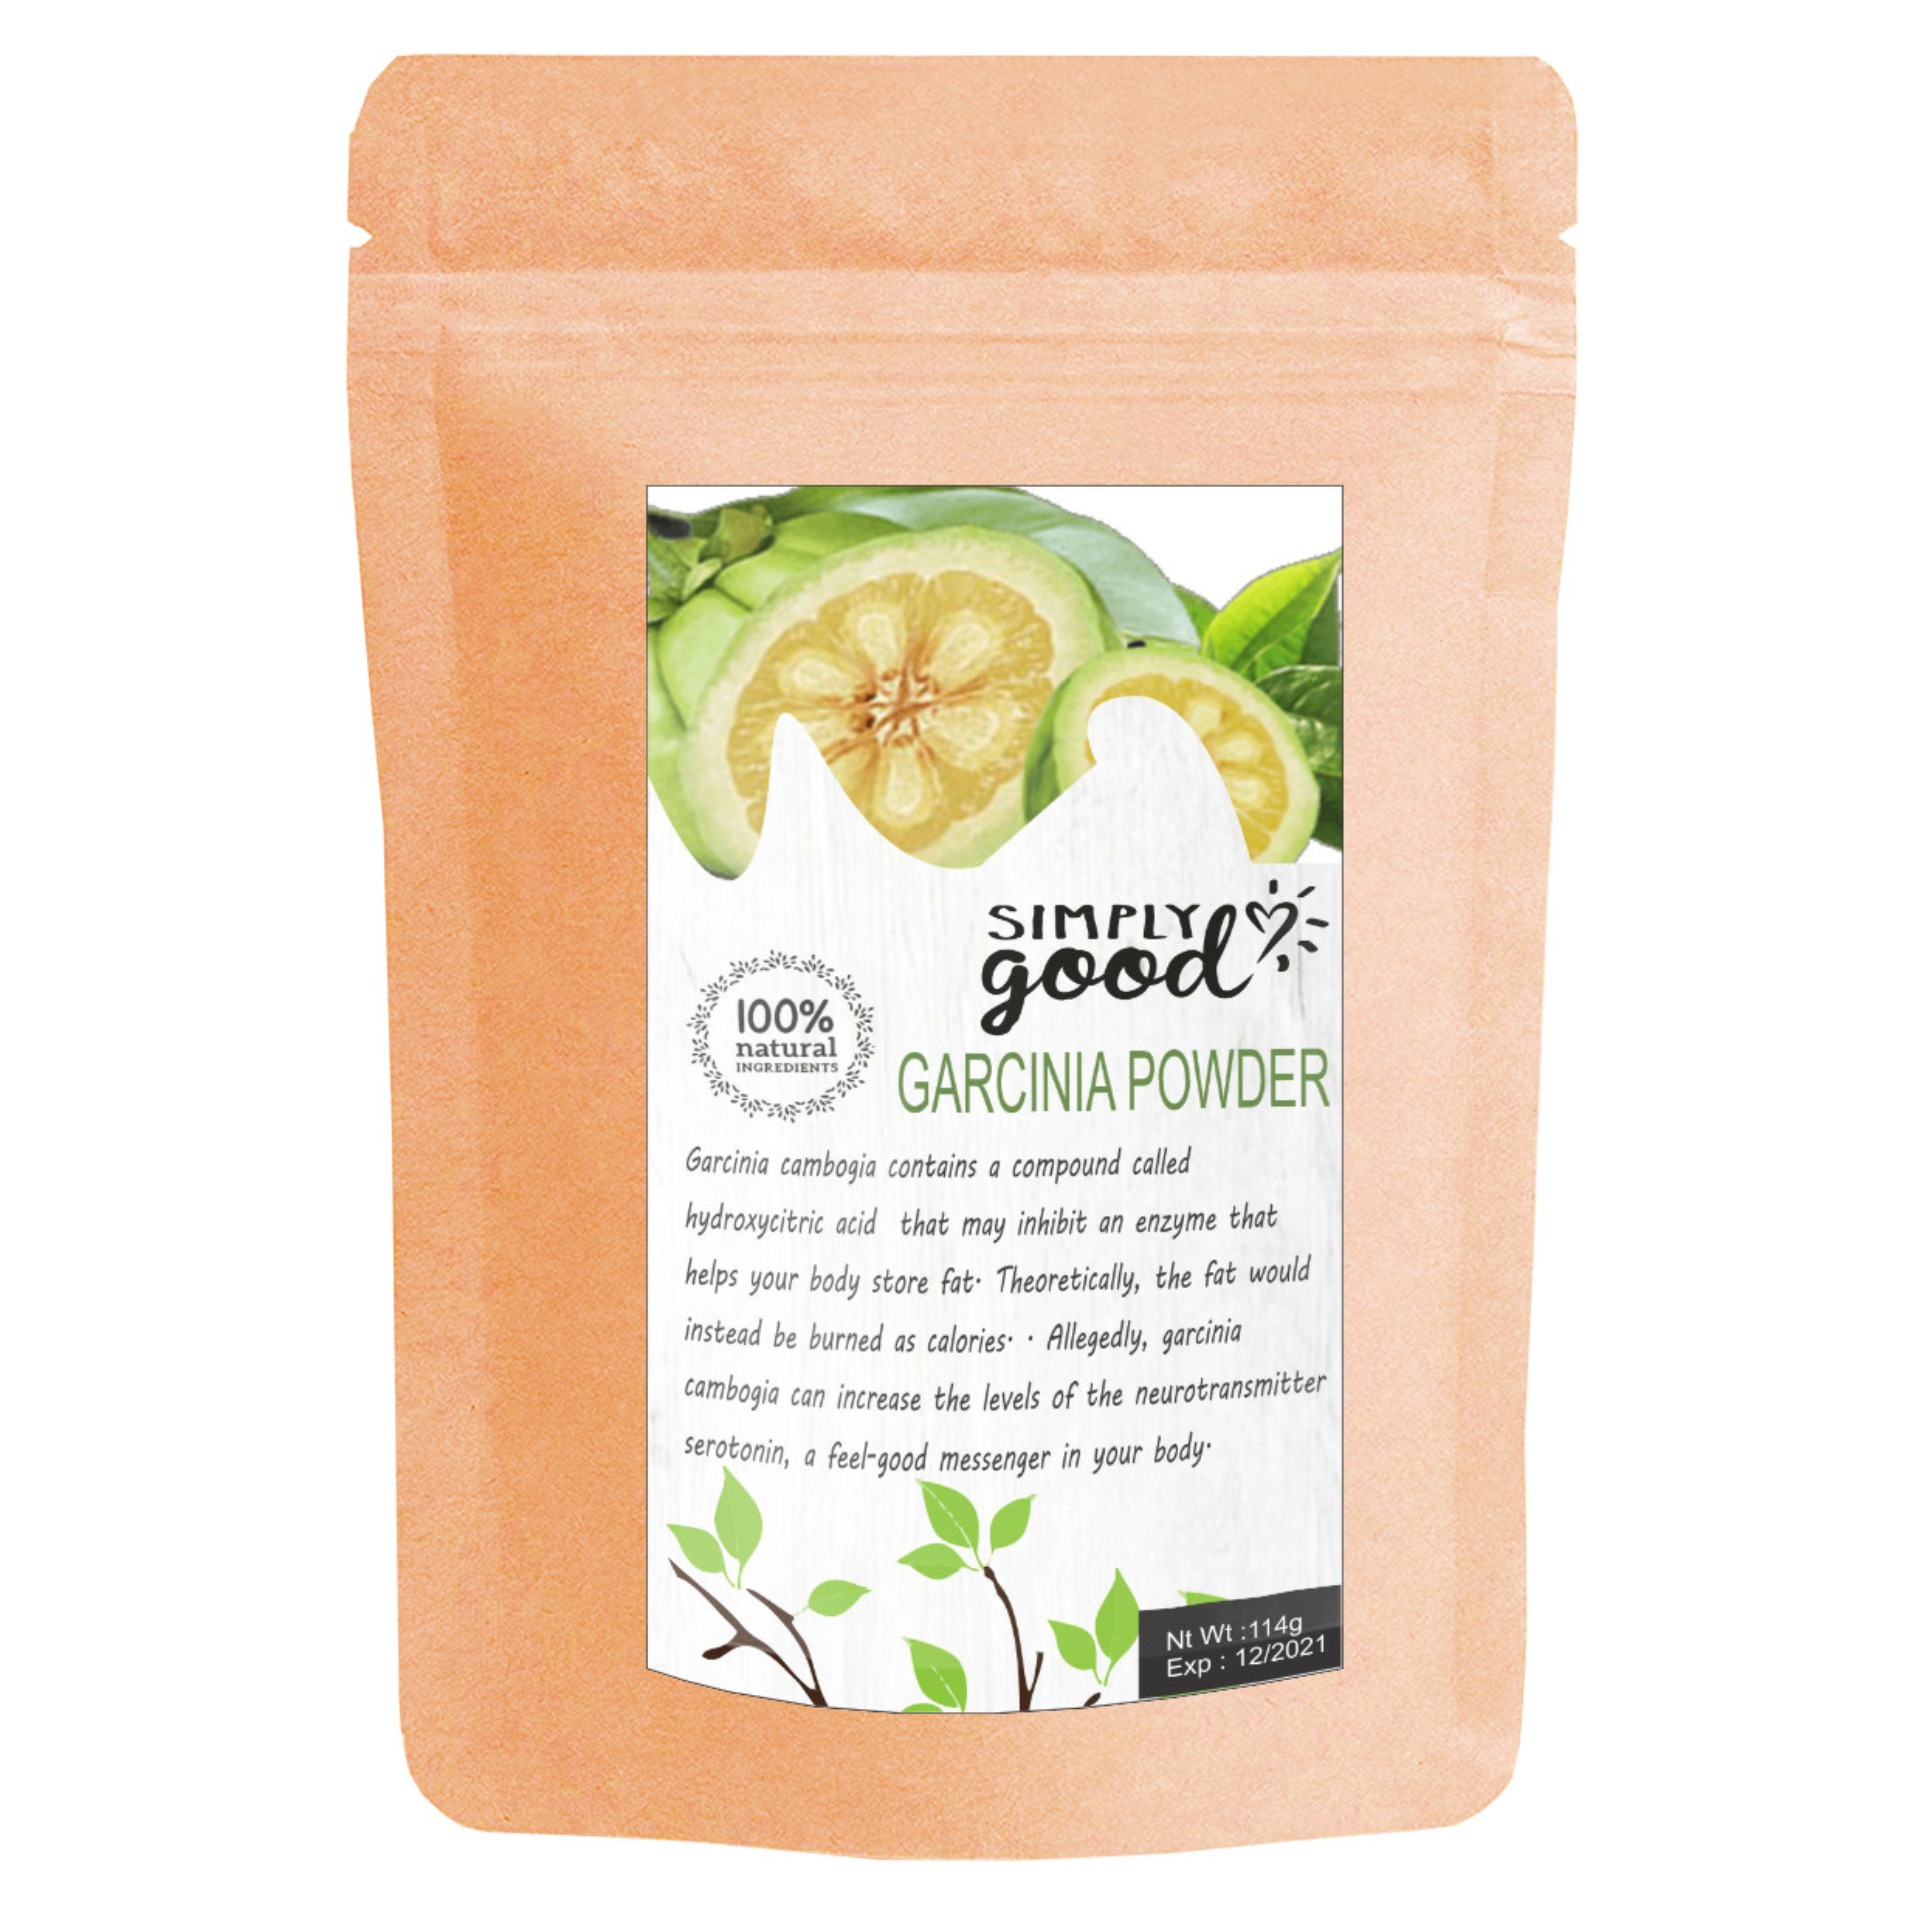 Organic Garcinia Cambogia Powder 336 G Buy Online At Best Prices